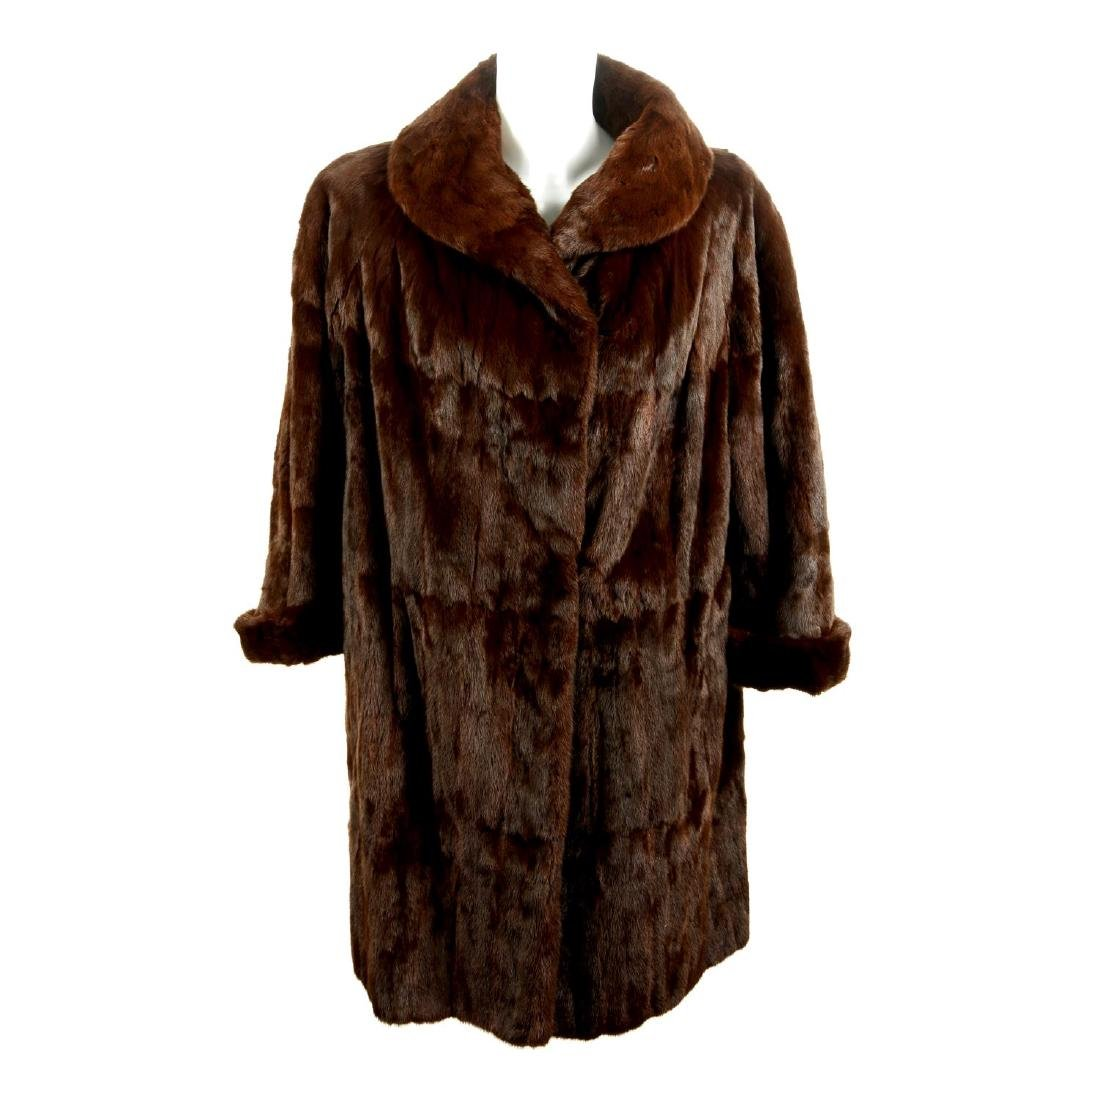 A mink fur stole and a squirrel fur coat. To include a